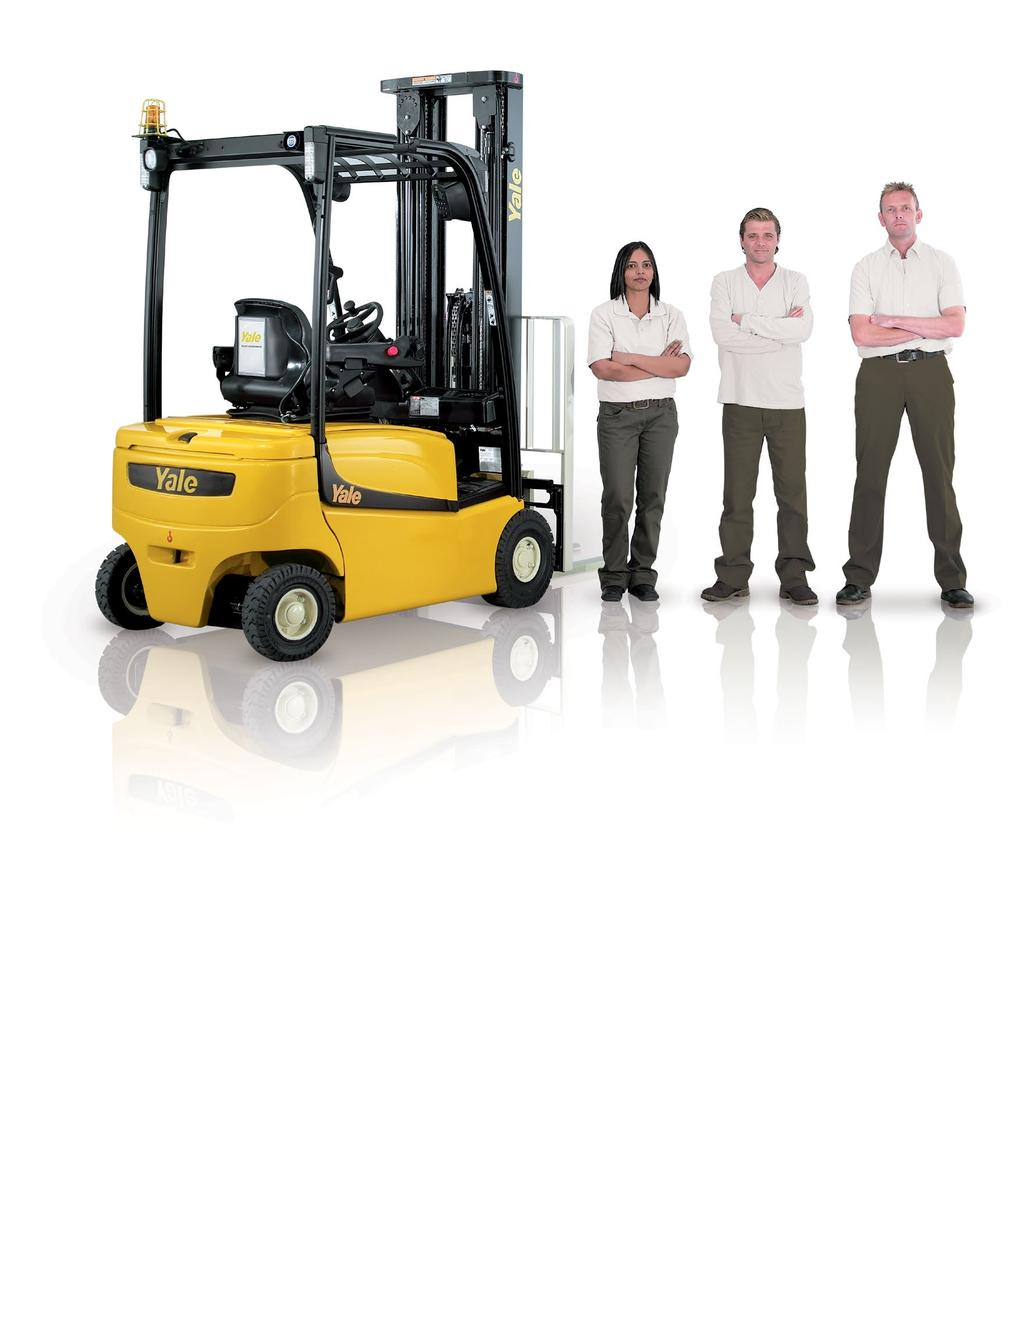 Electric Lift Trucks The Complete Range Pdf Yale Erc040 Wiring Diagrams Comfort For All